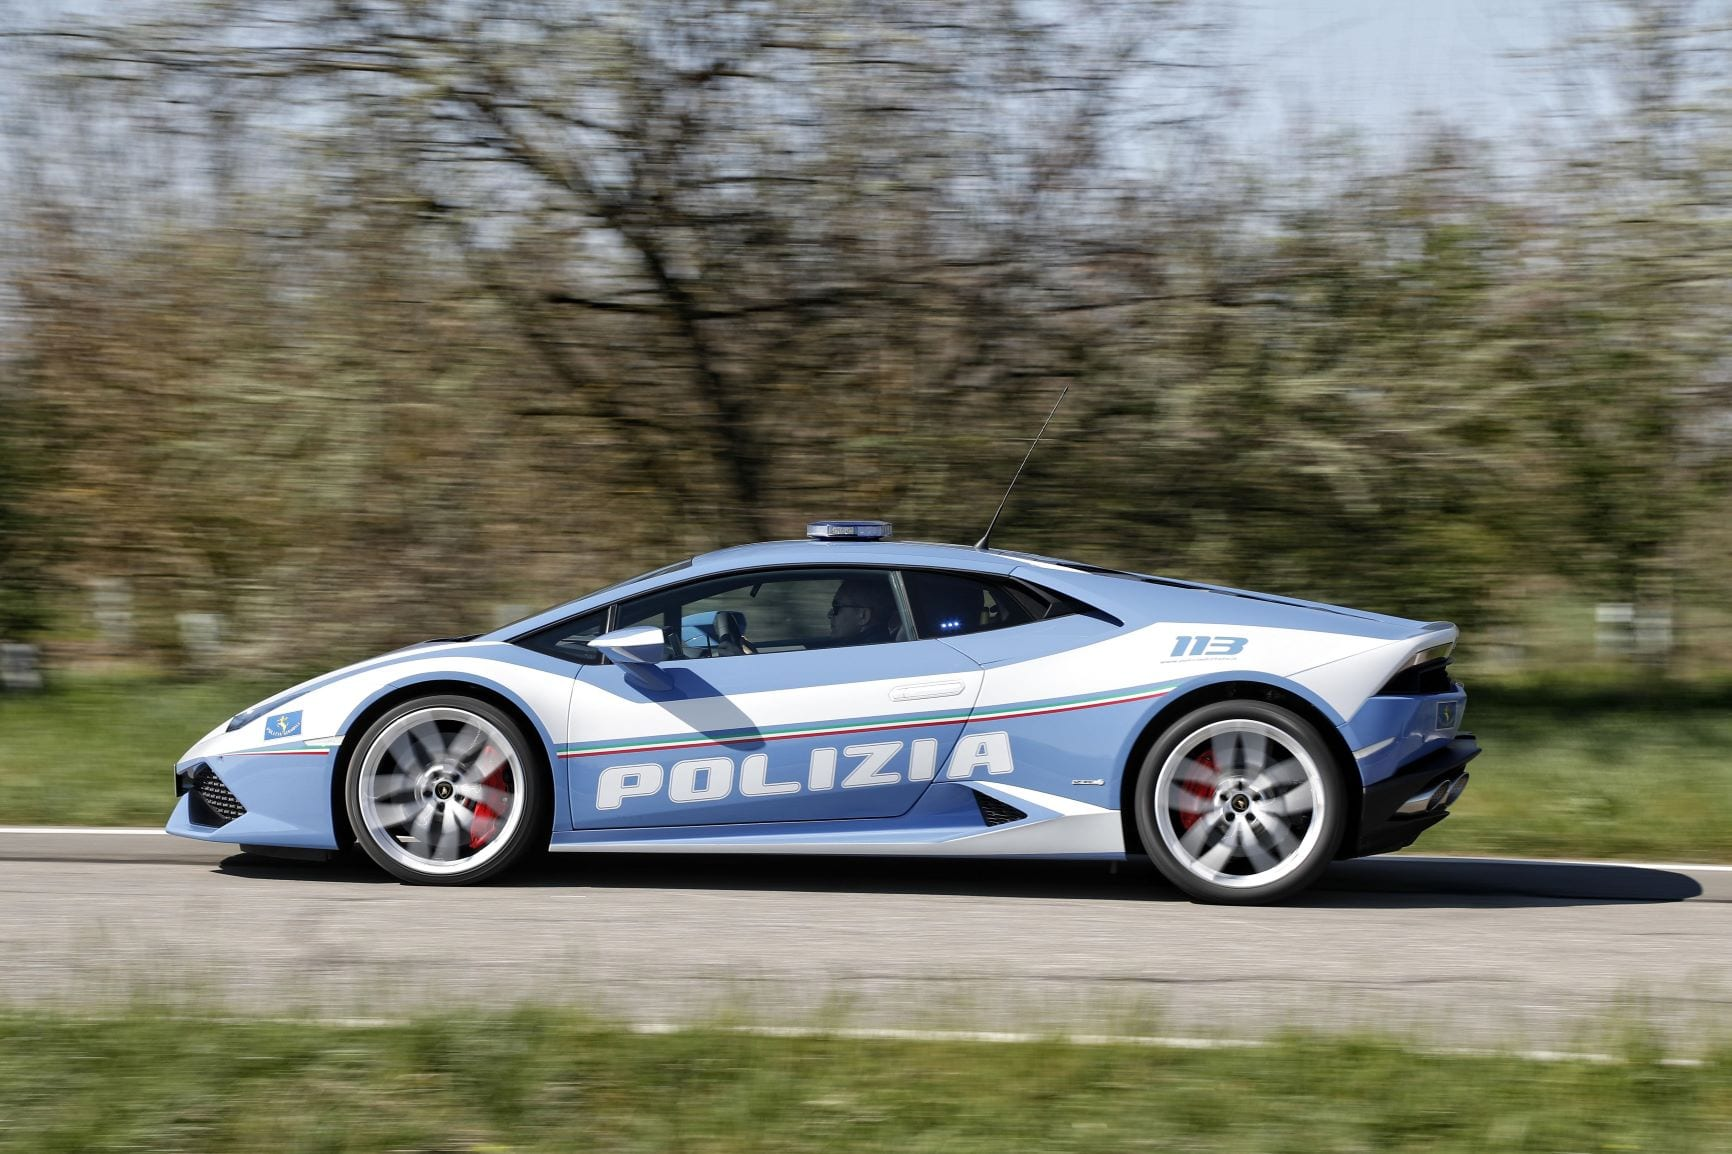 The Lamborghini Huracan in a Police livery